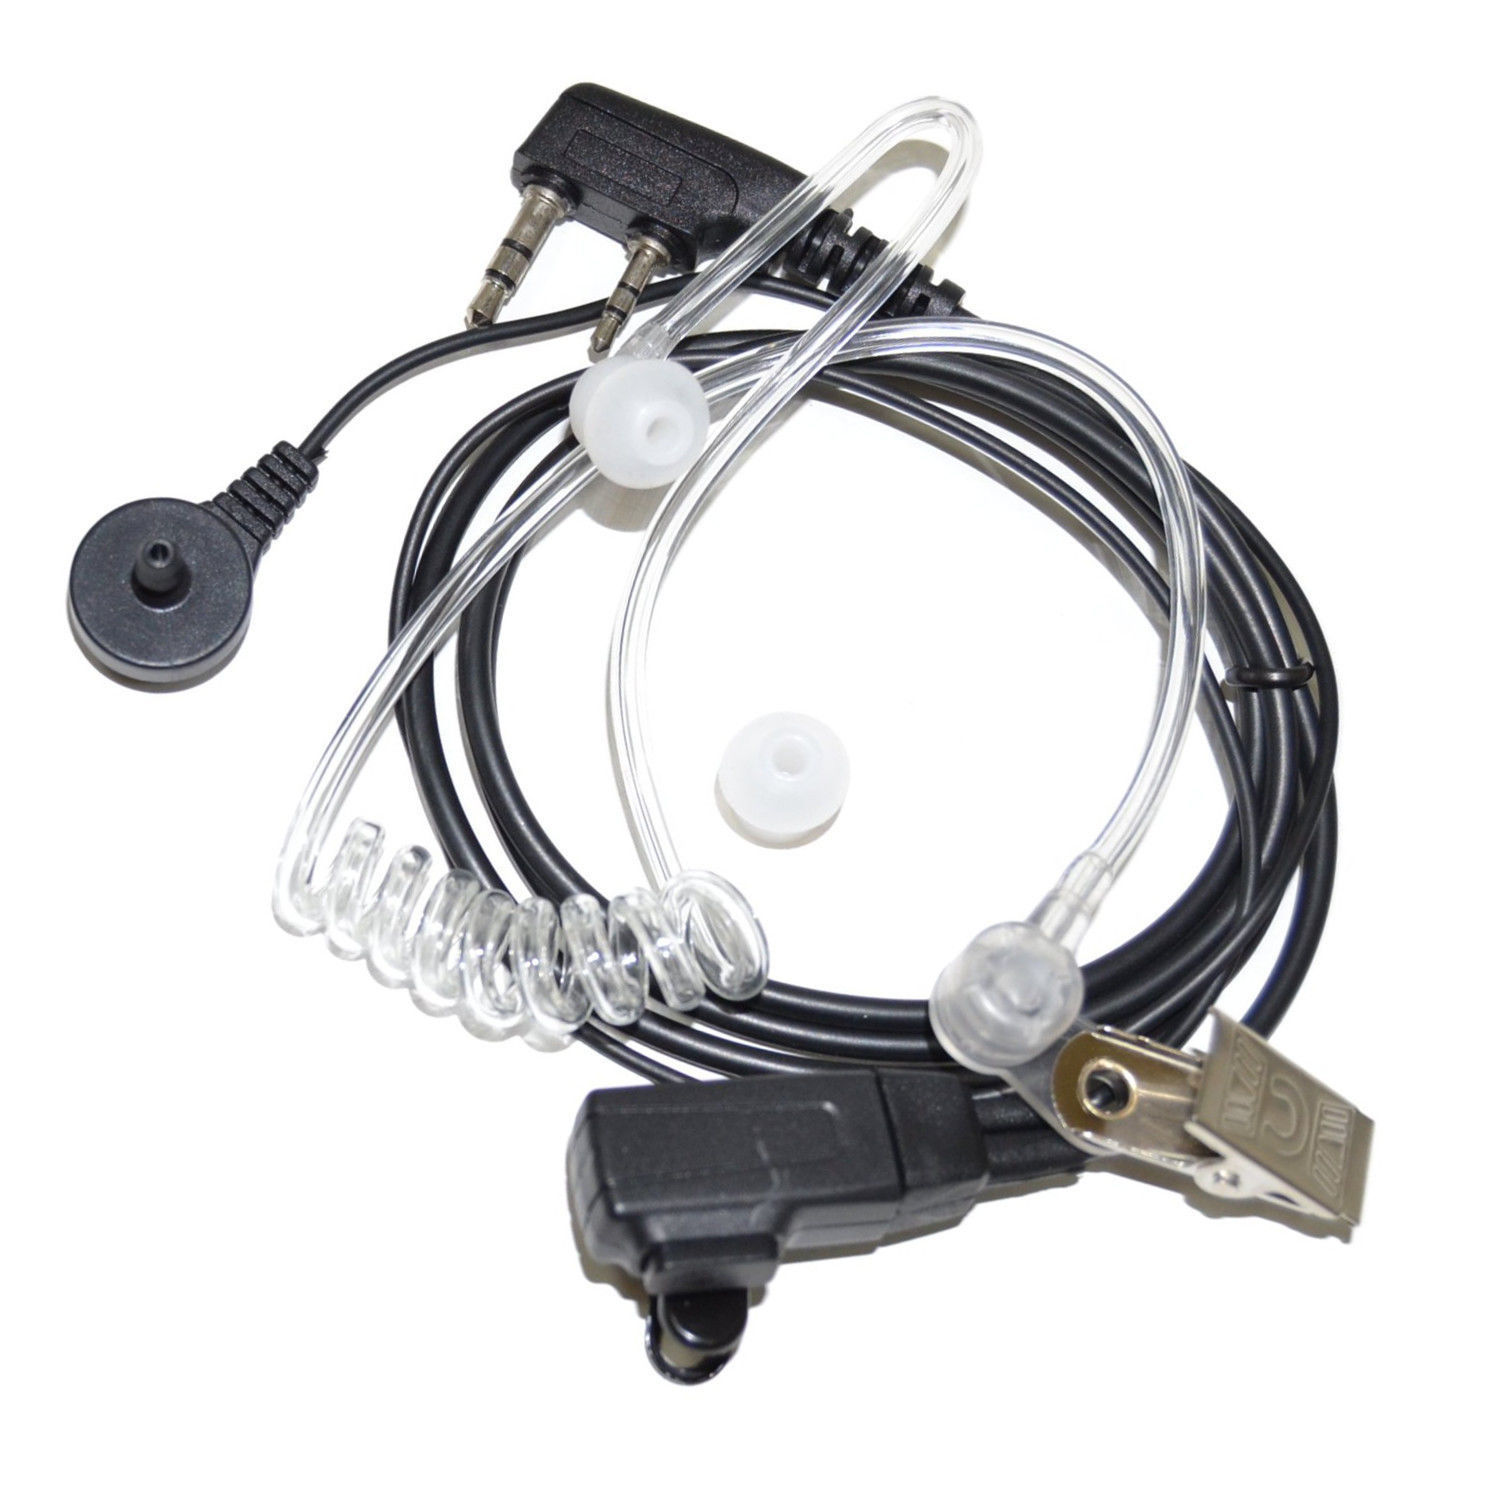 2-Pack HQRP Hands Free Headset for Kenwood TK-3202 TK-3202K TK-3202L TK-3230XLS